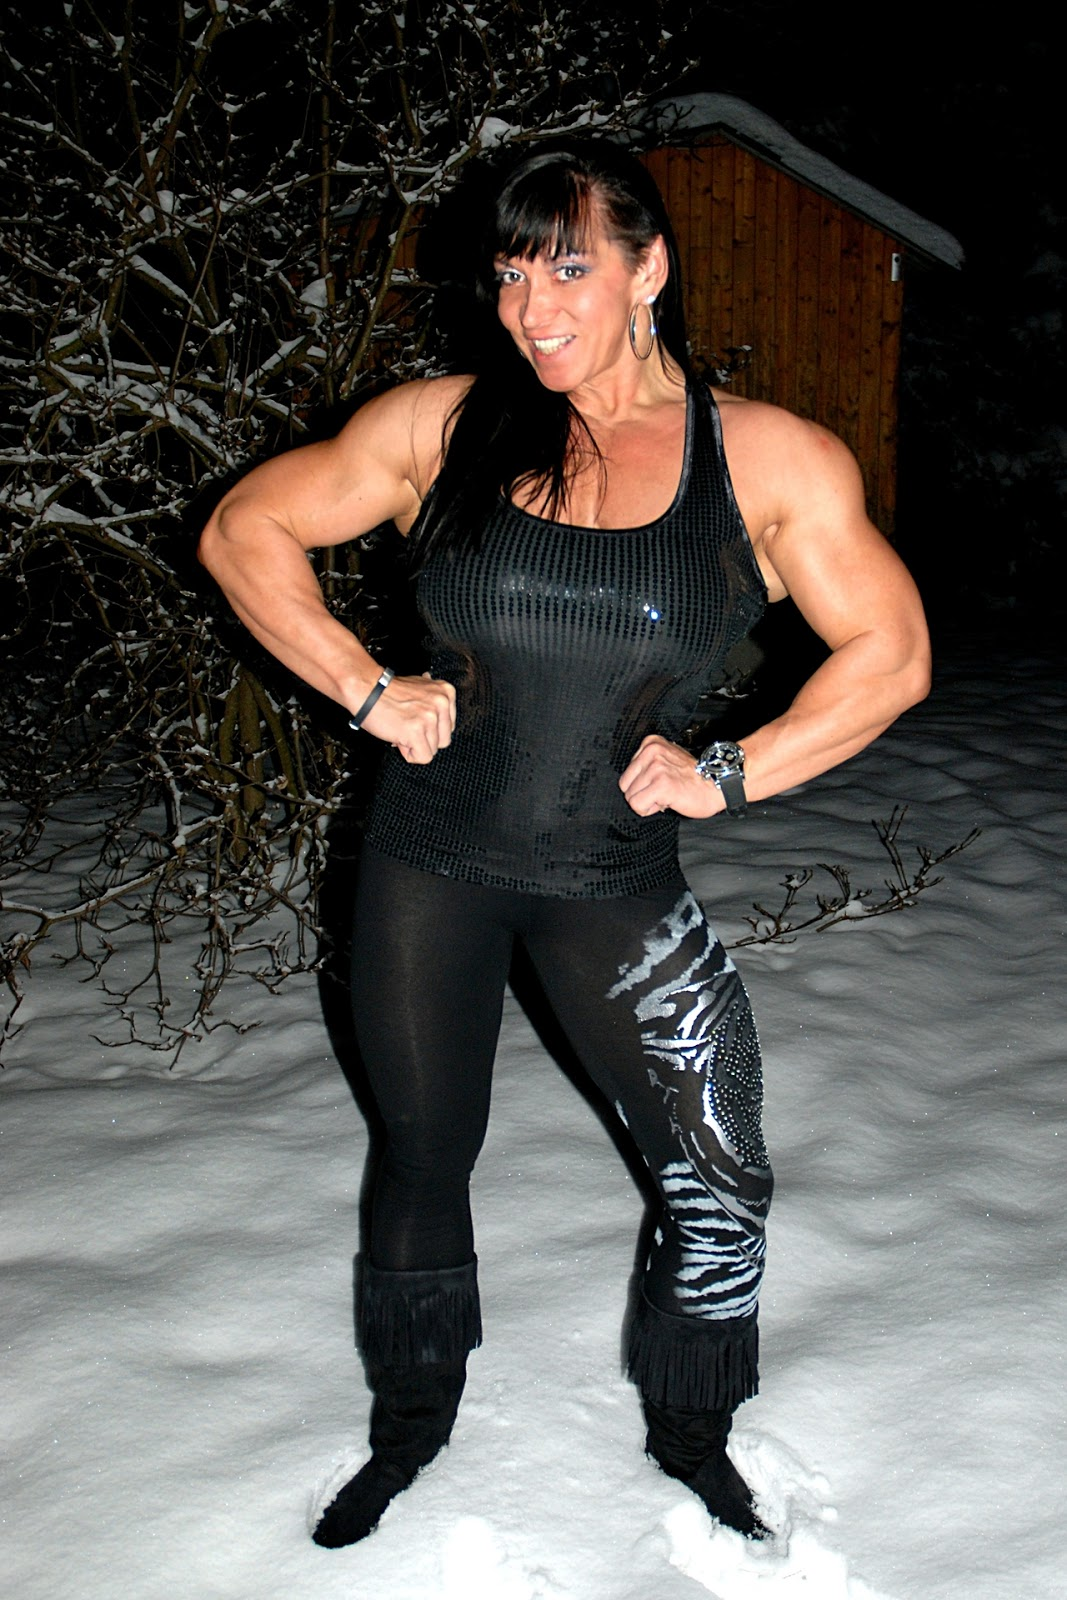 Best Female Muscle Porn